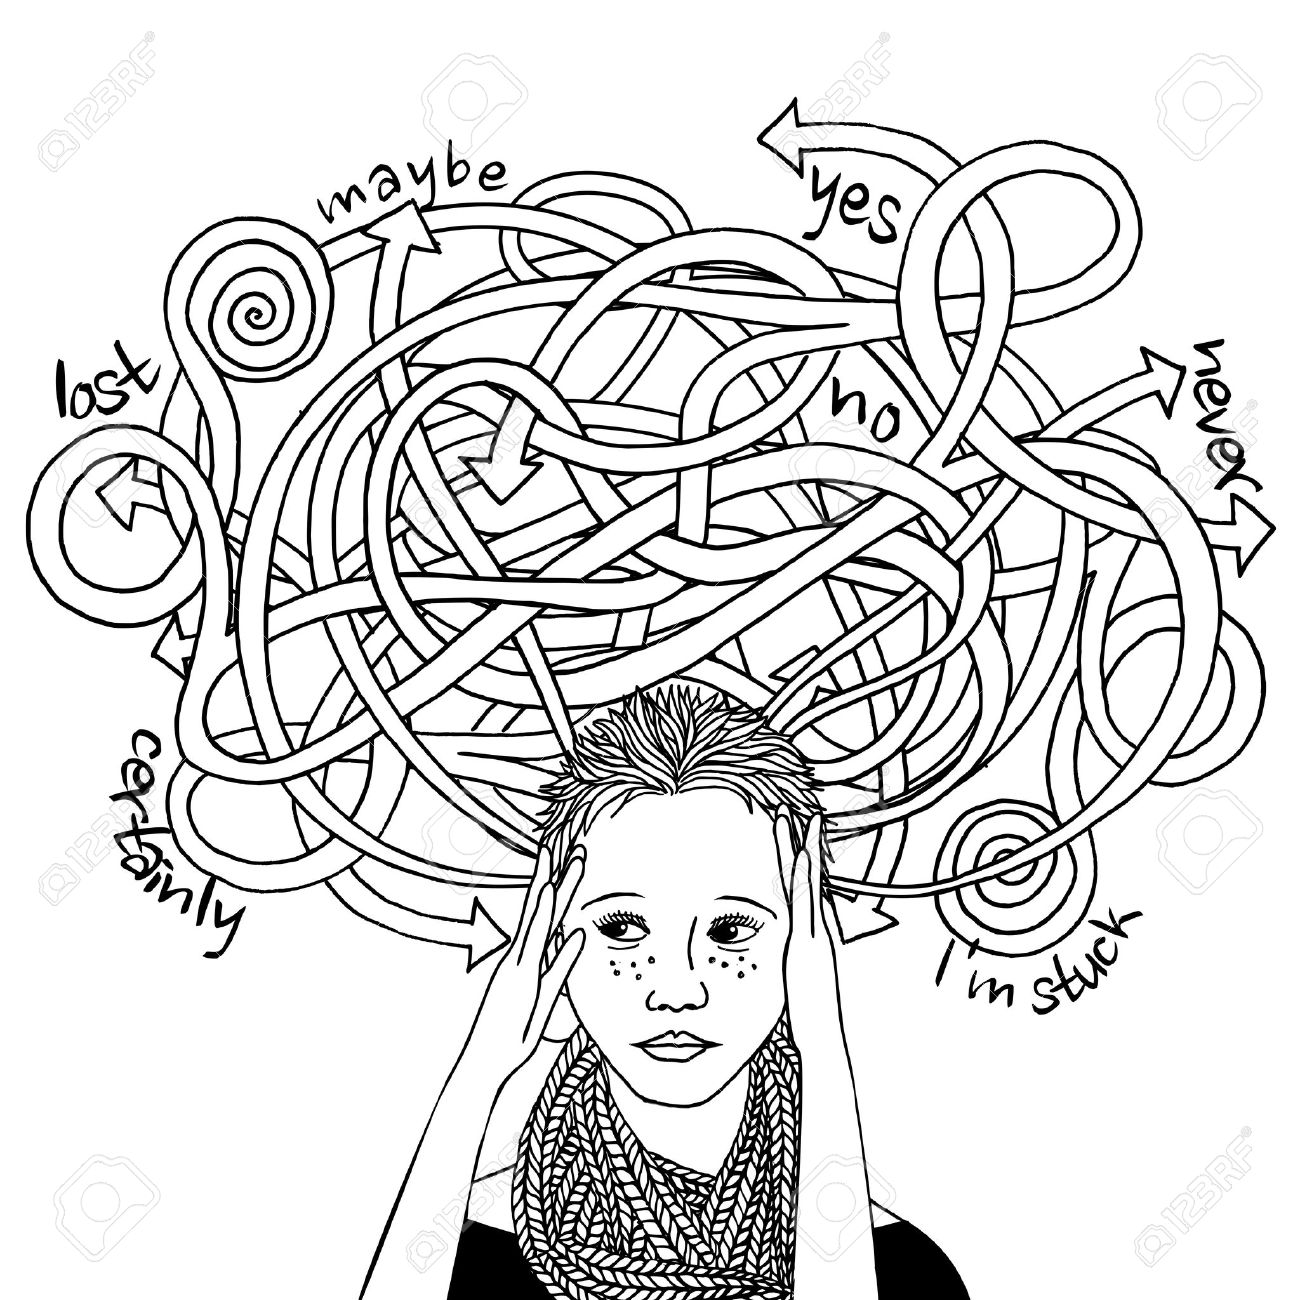 Confused decision making girl, black and white ink illustration - 60560501